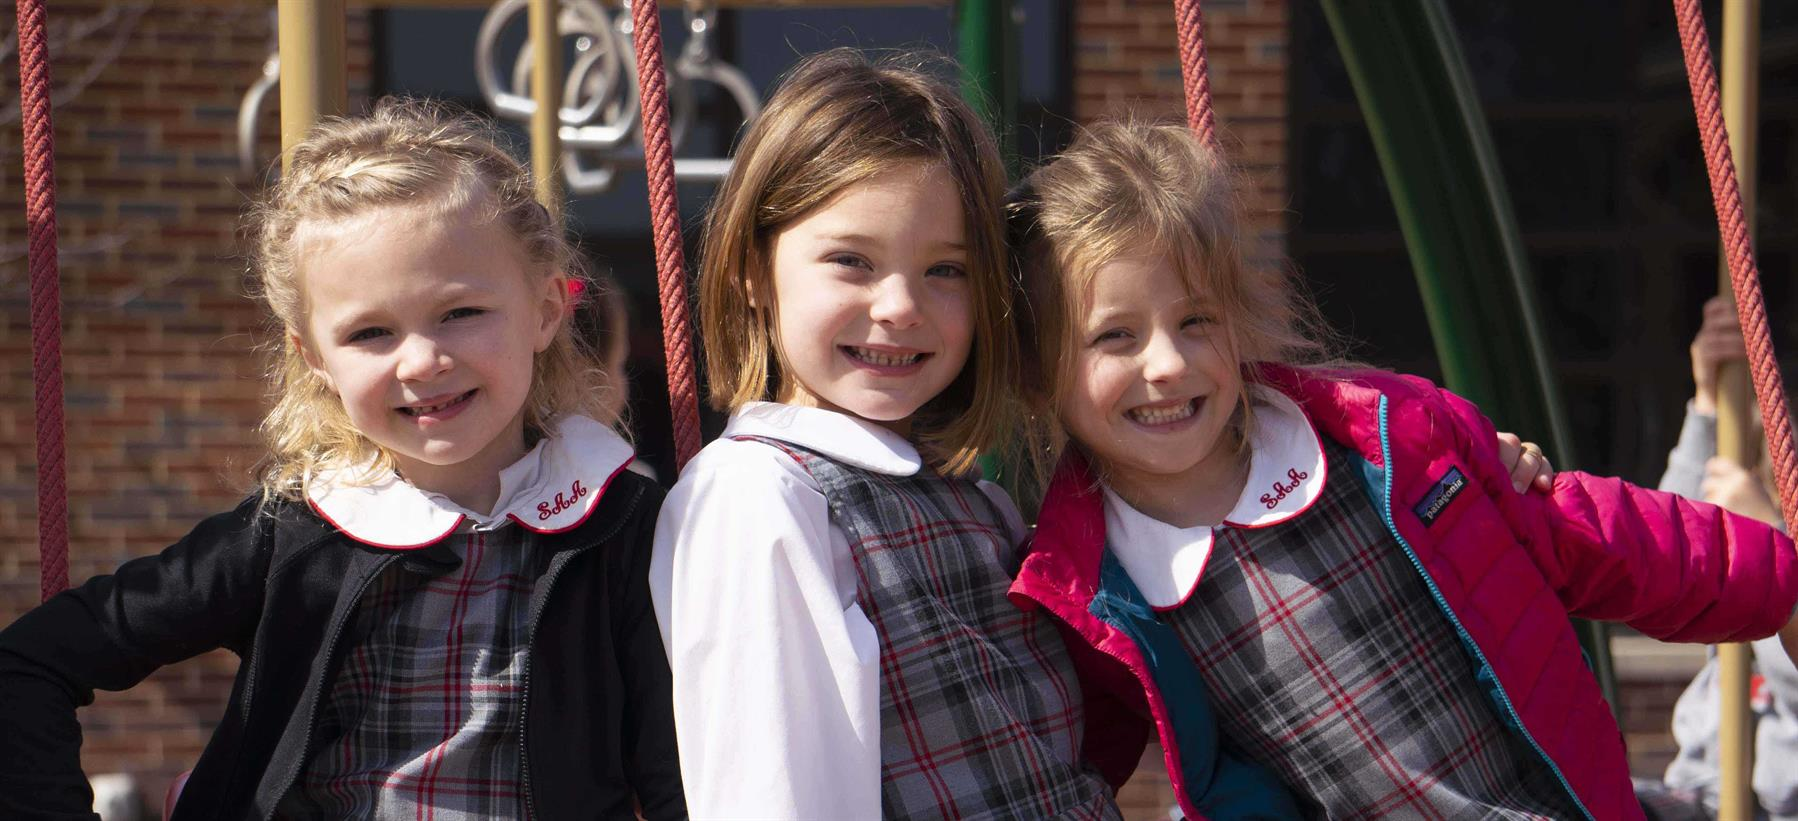 Our Dominic Community | St. Agnes Academy-St. Dominic School